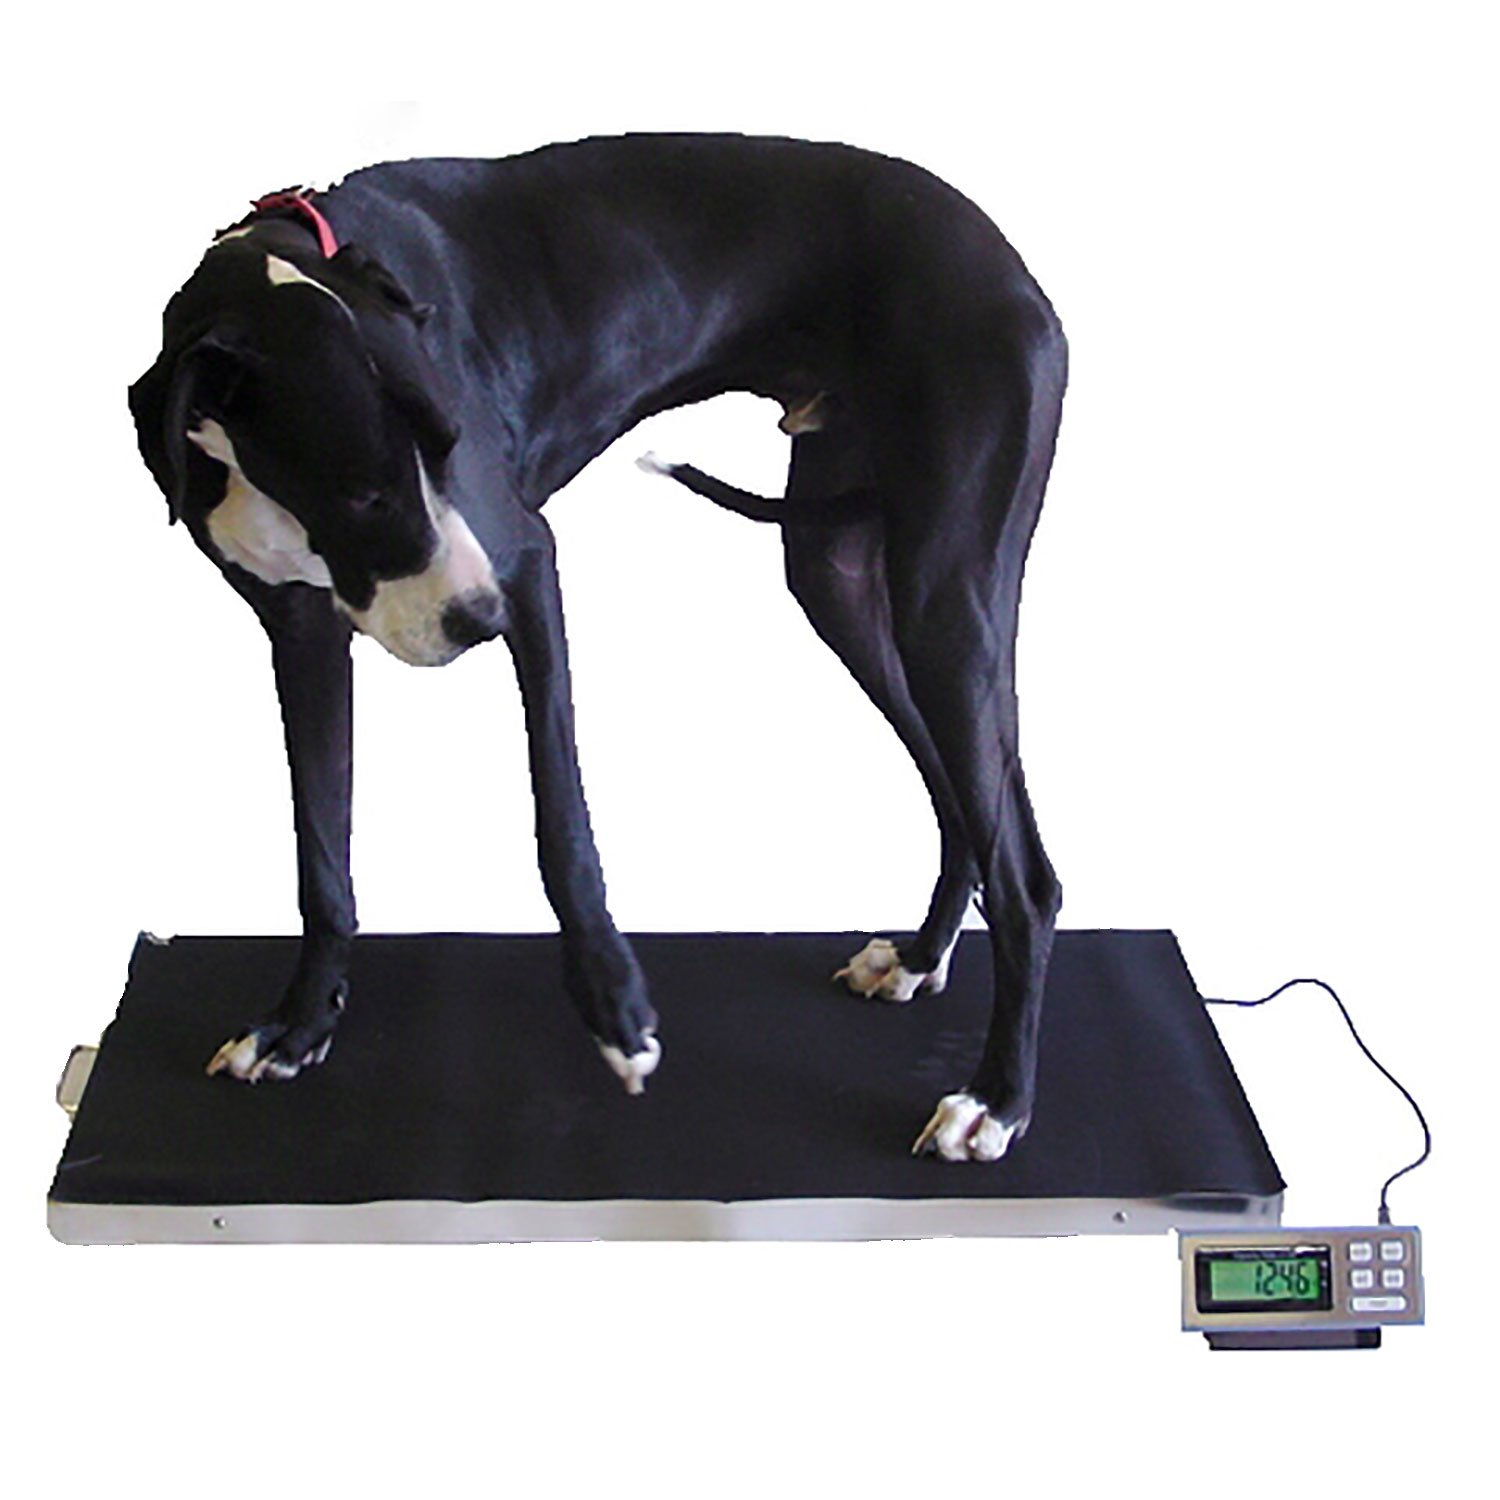 700 LB x 0.2 LB 44 x 22 Inch Extra Large Platform Vet Veterinary Animal Livestock Dog Goat Calf Pig Sheep 4H Digital Scale NEW